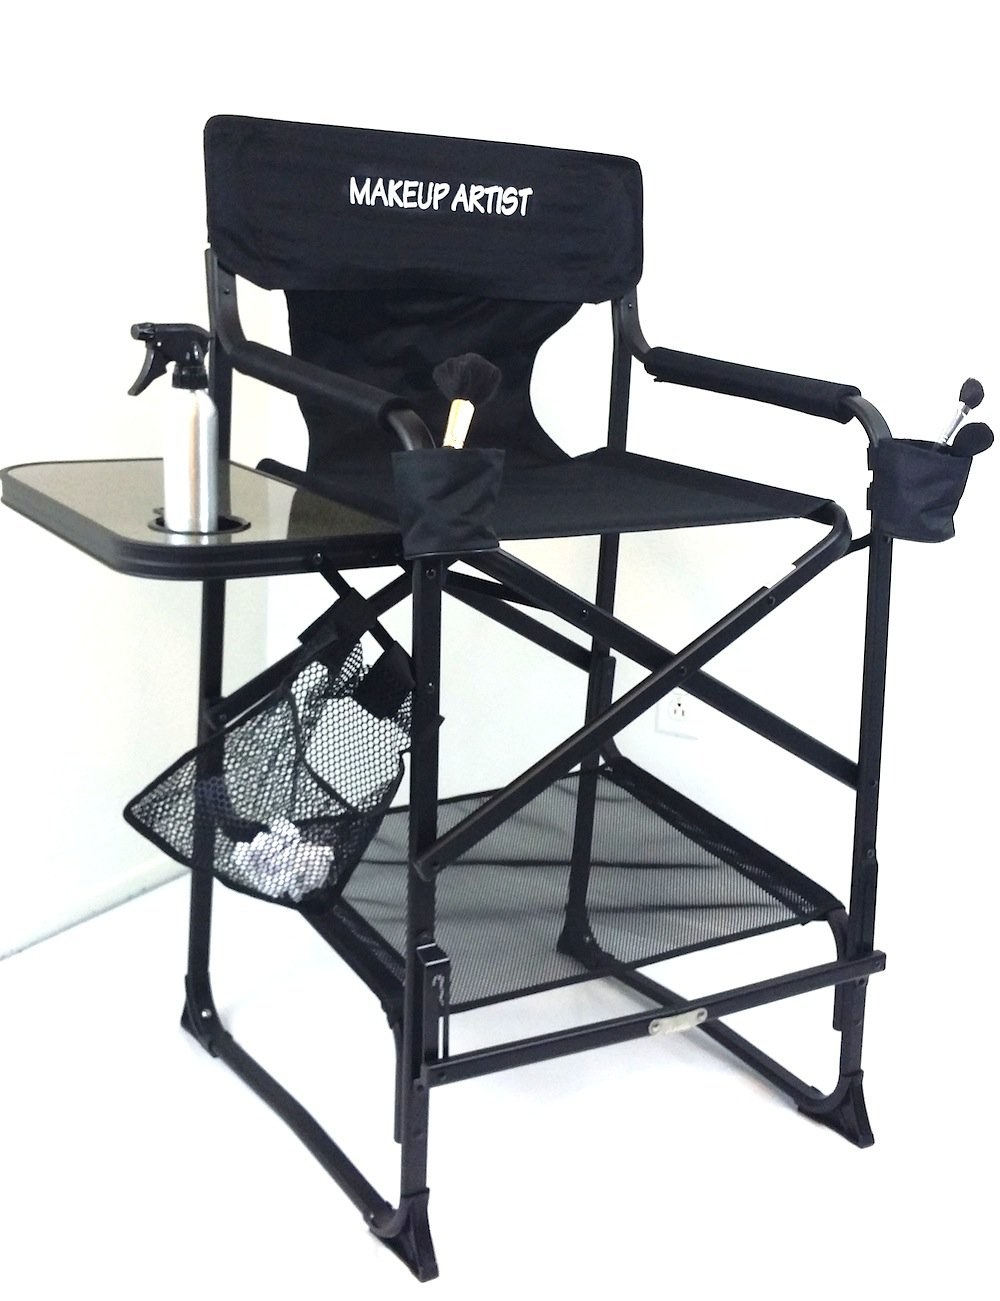 TUSCANYPRO MakeUp Artist ''Big Daddy'' HEAVY DUTY Tall PRO Chair-10 Years Warranty PRODUCT-A BONUS MAKE UP CASE INCLUDED WITH YOUR CHAIR!!!BIGGER,WIDER AND BETTER..350 Lb Max Weight Cap.